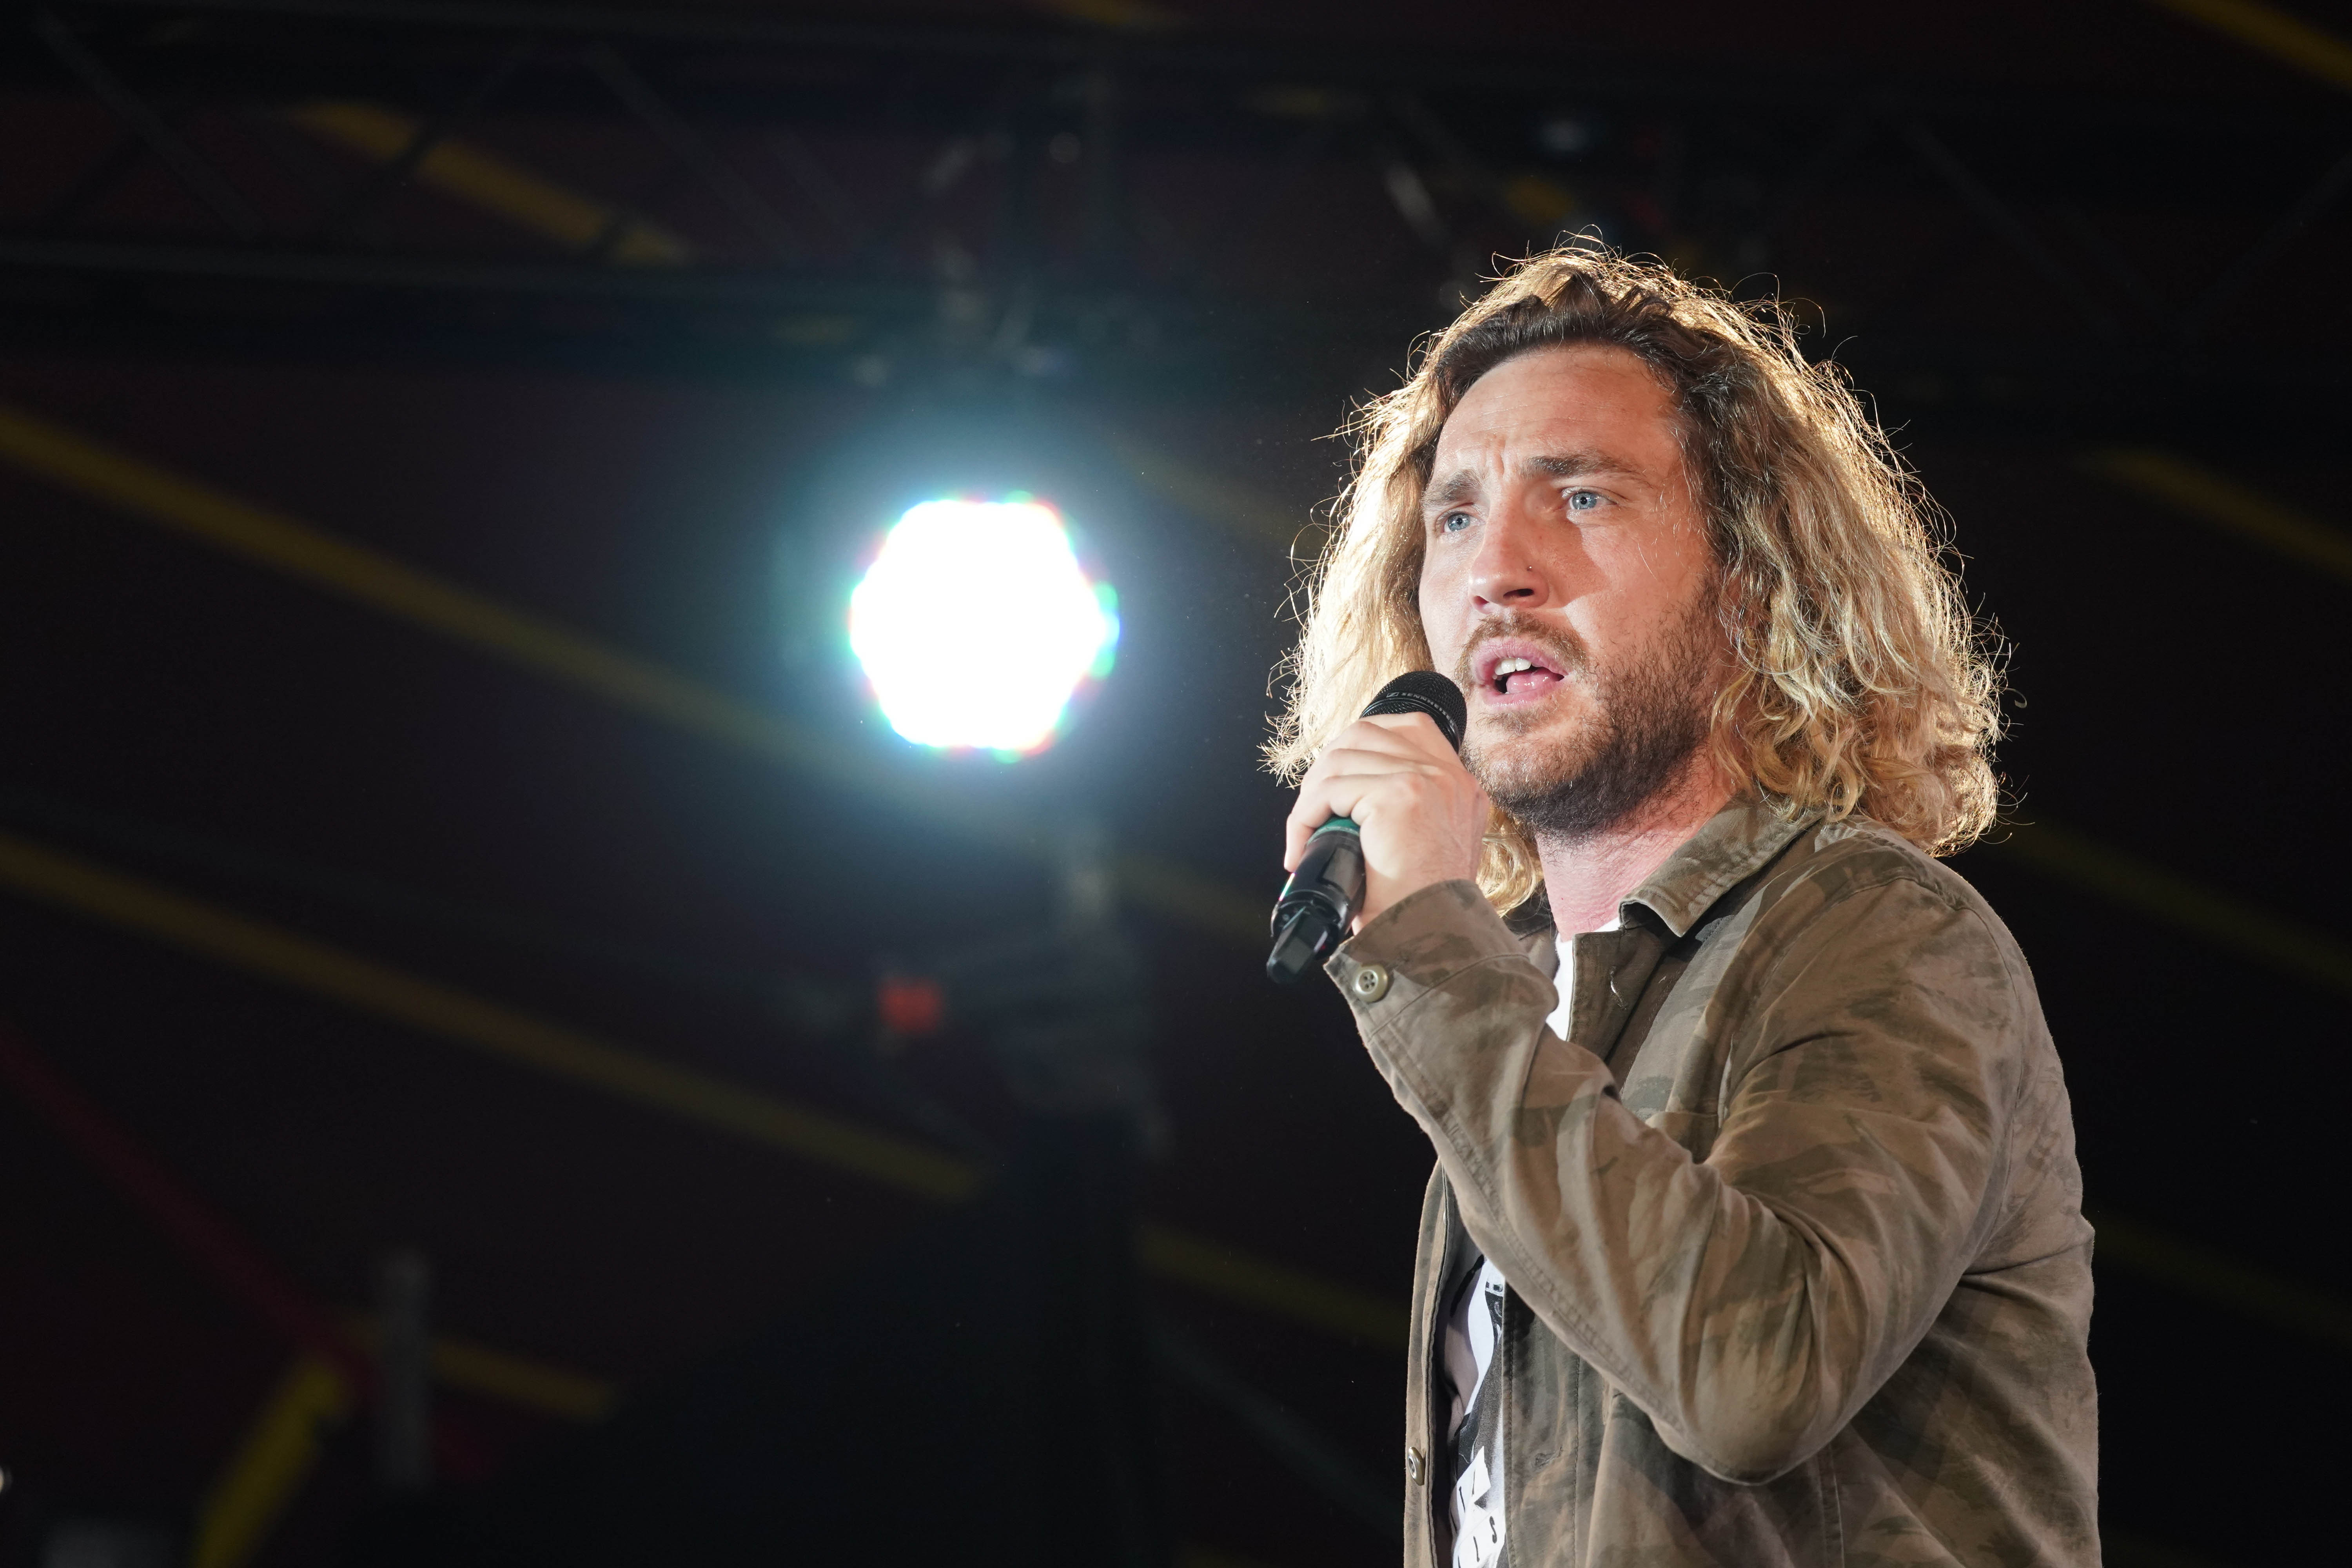 Seann Walsh performing live on the Alternative Stage at the 2017 Reading Festival. Credit: PA Images